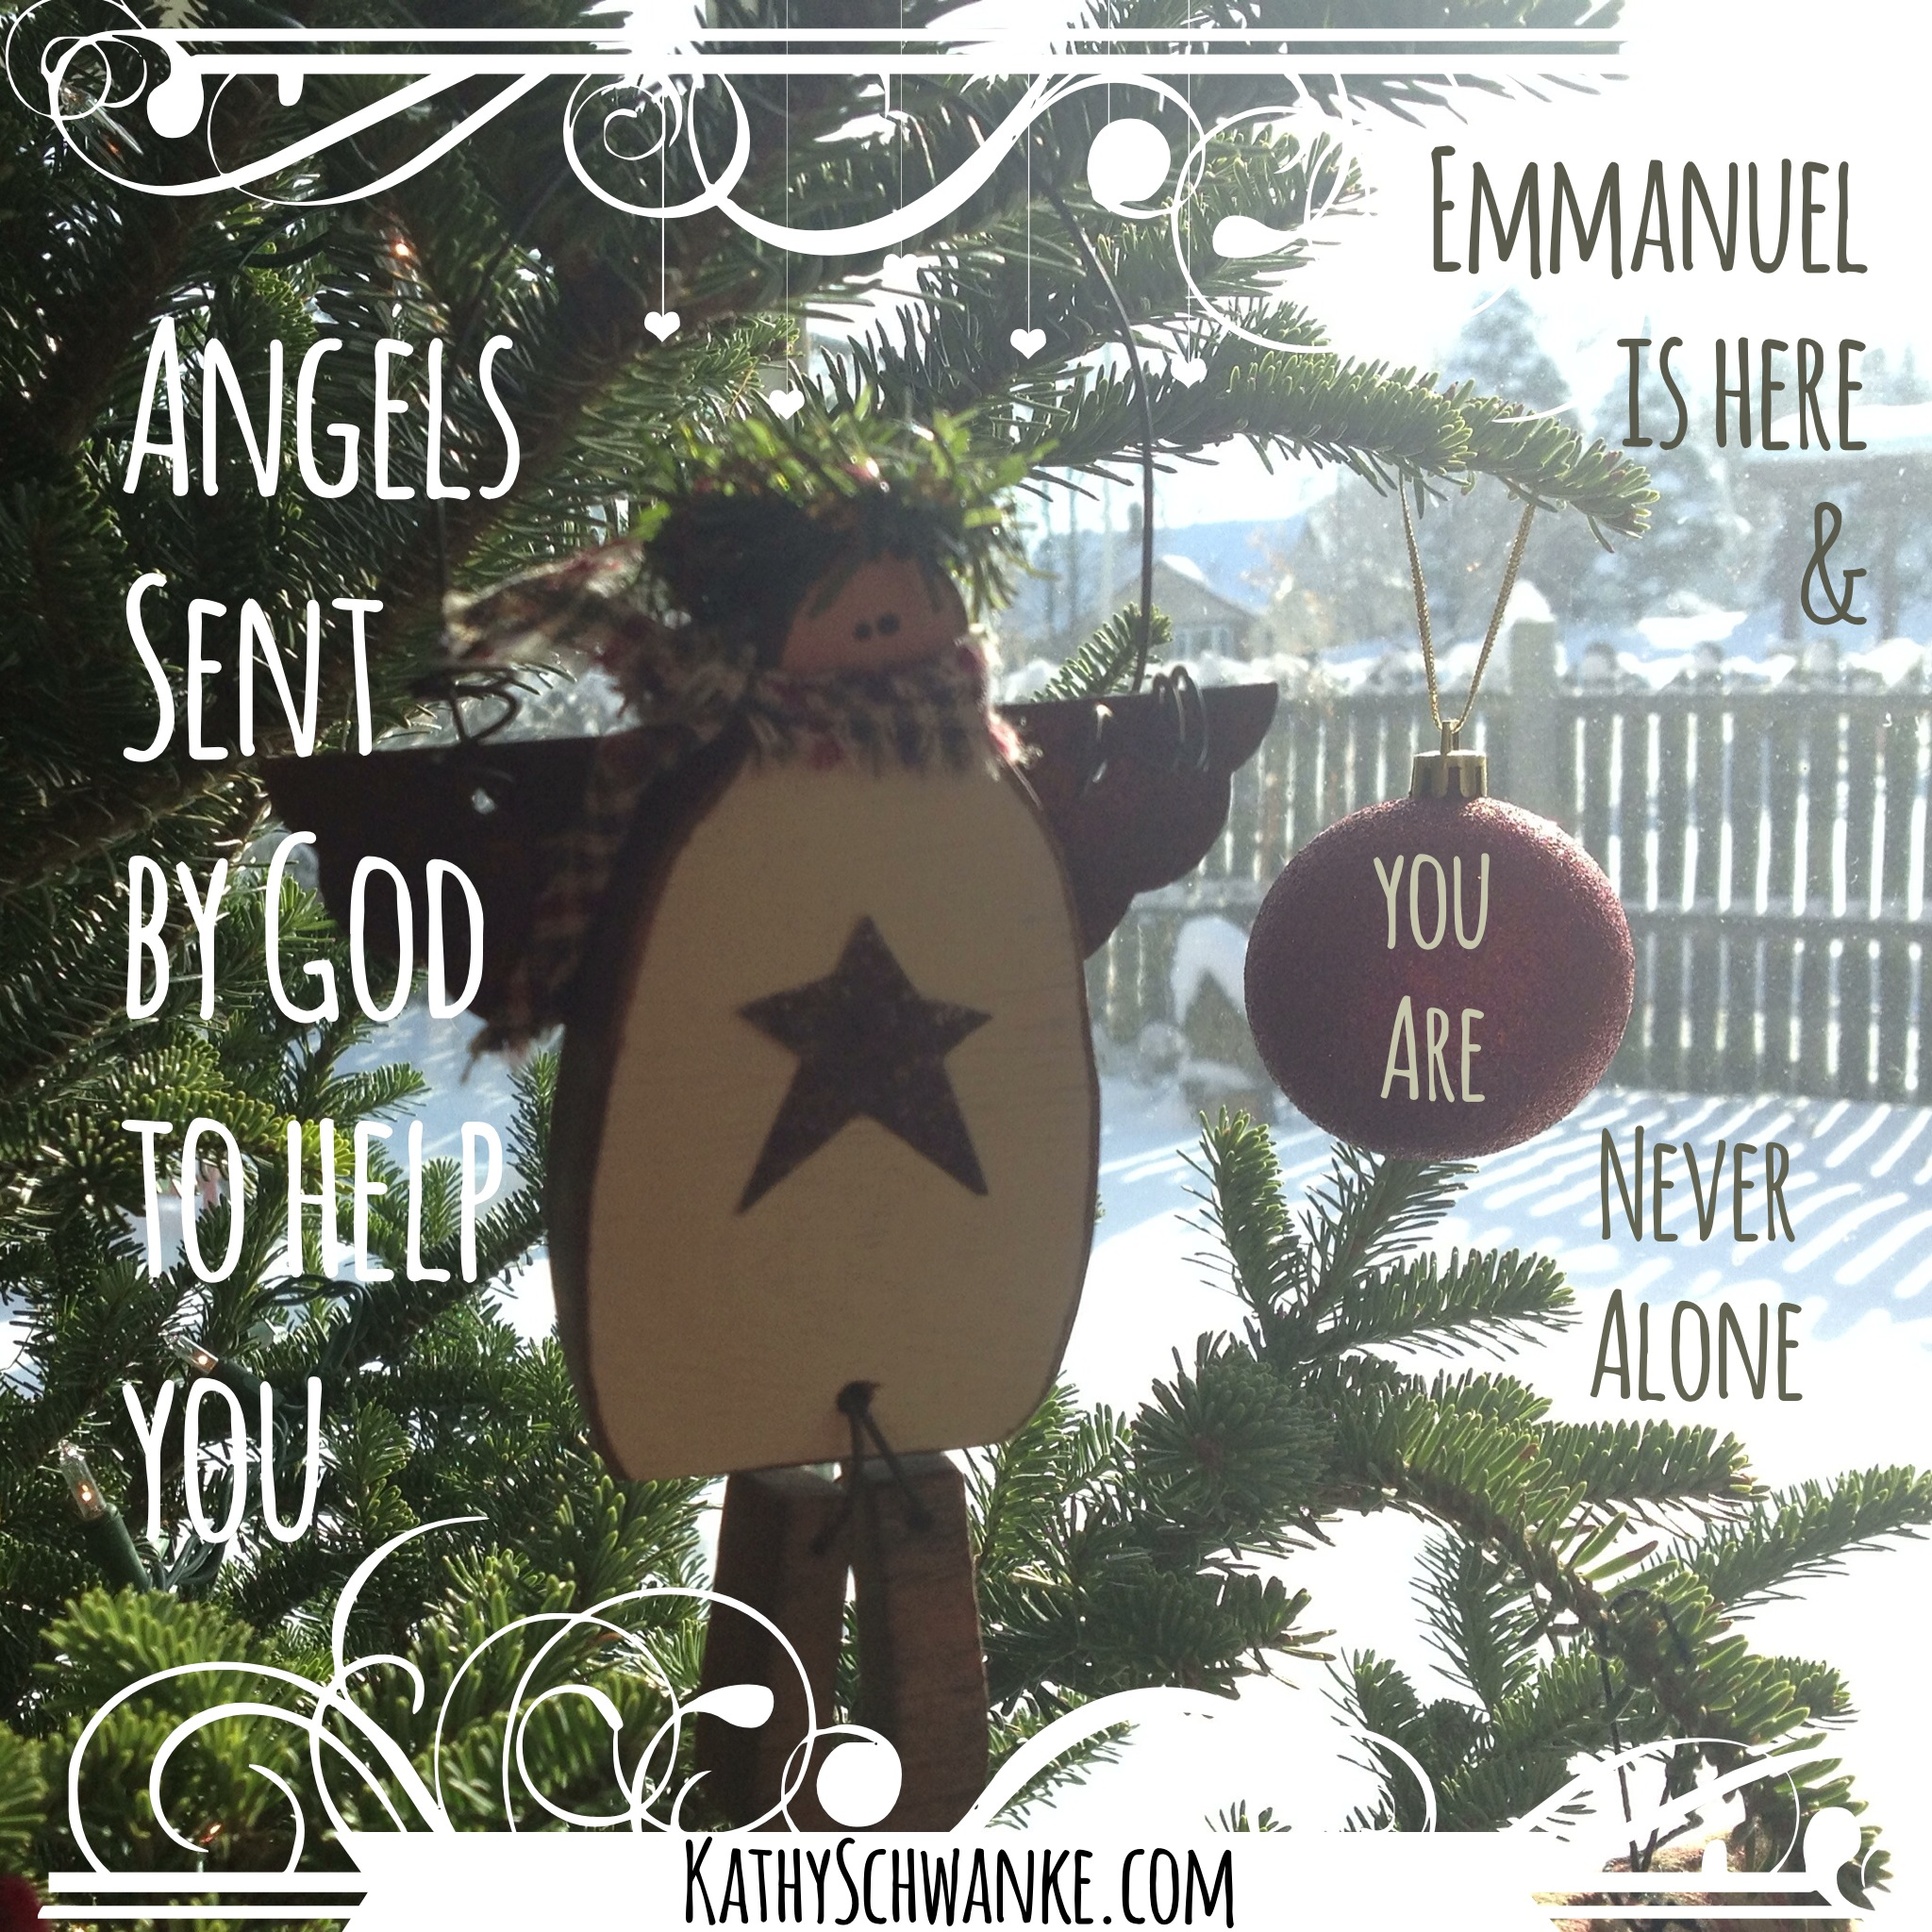 Christmas: Angels All Around and Devils Are Felled